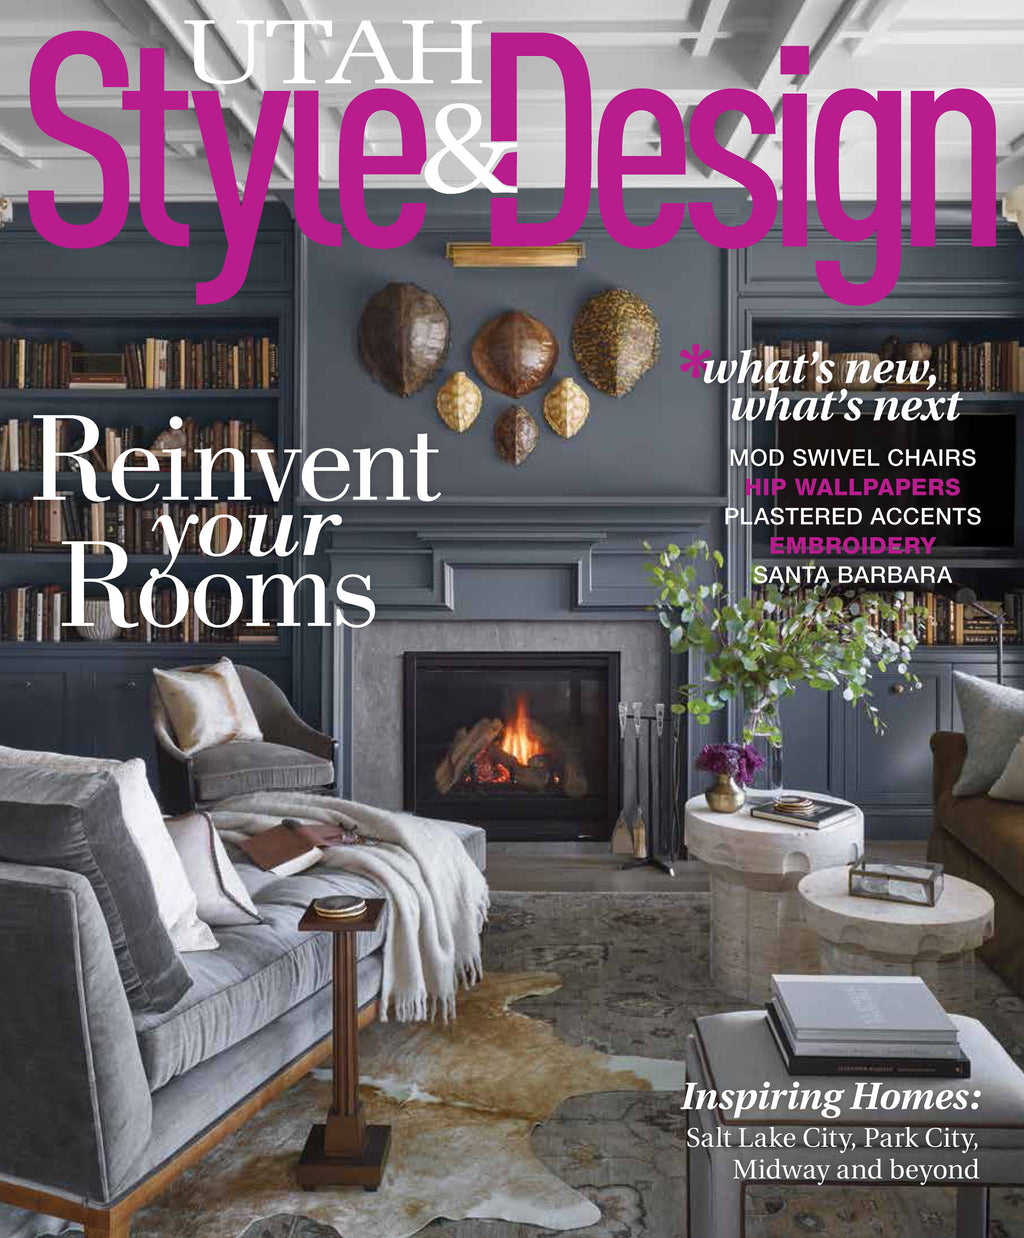 Utah Style & Design winter 2020 cover